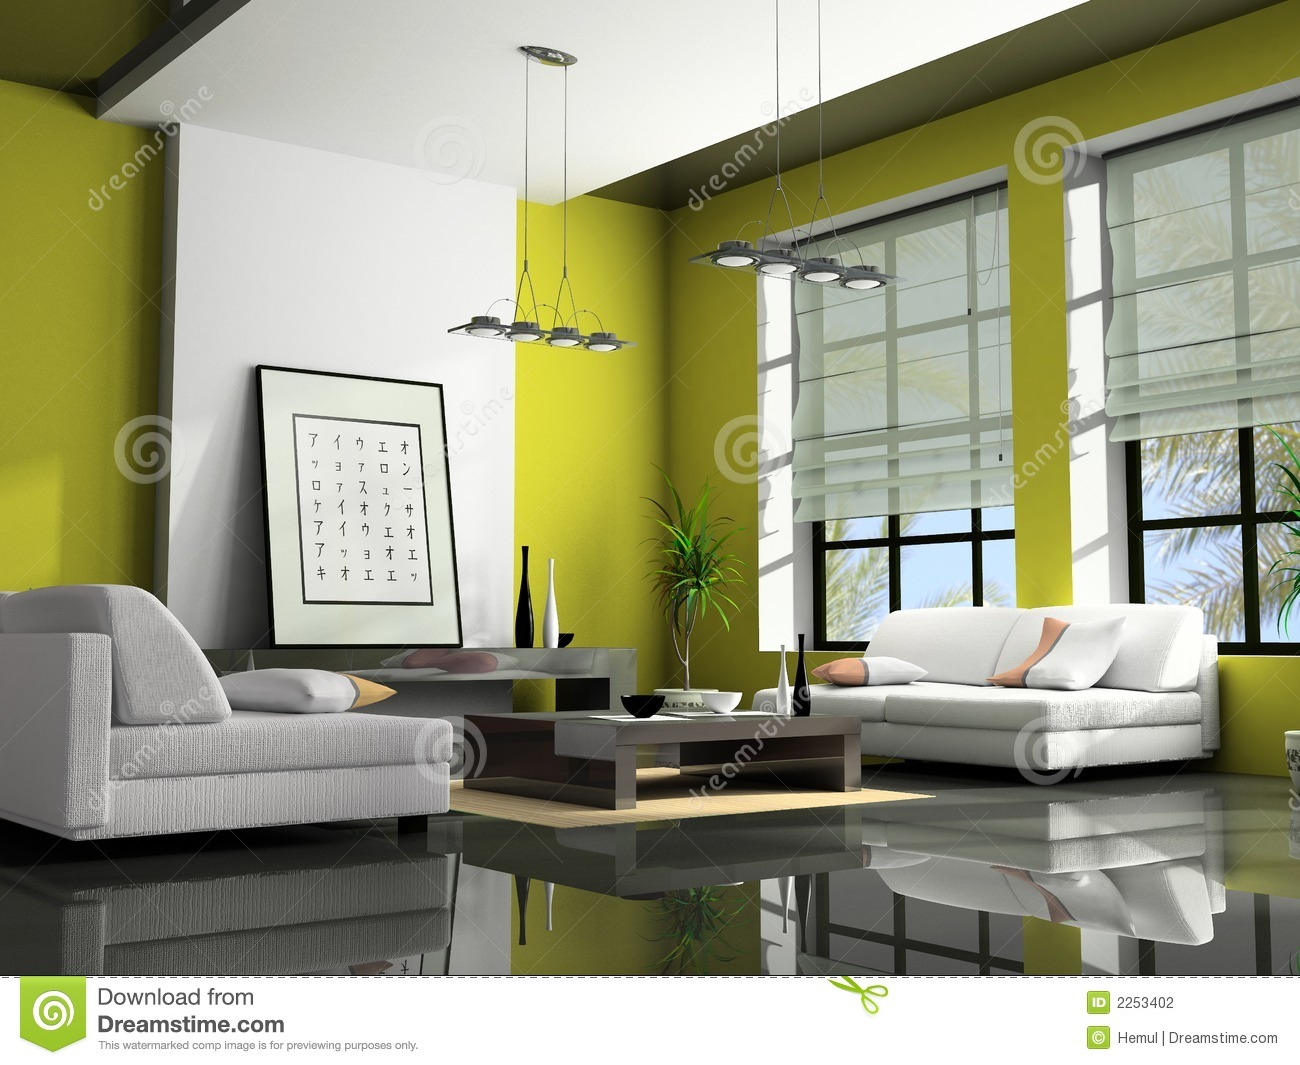 Home interior 3d rendering stock photography image 2253402 for 3d house interior